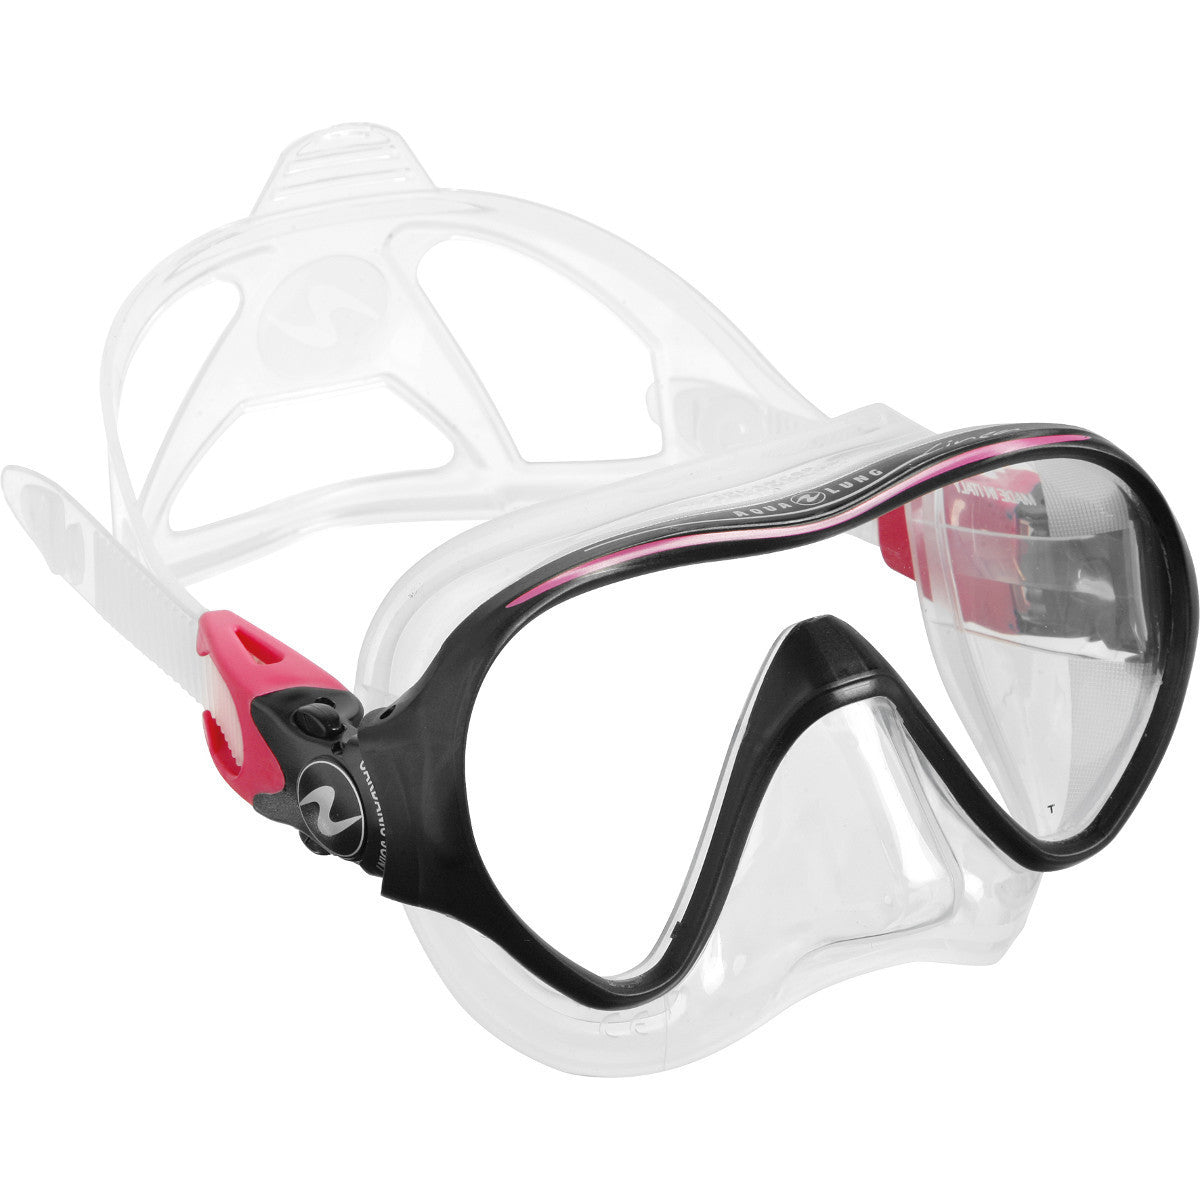 Aqua Lung Linea Mask - Oyster Diving Shop - 3